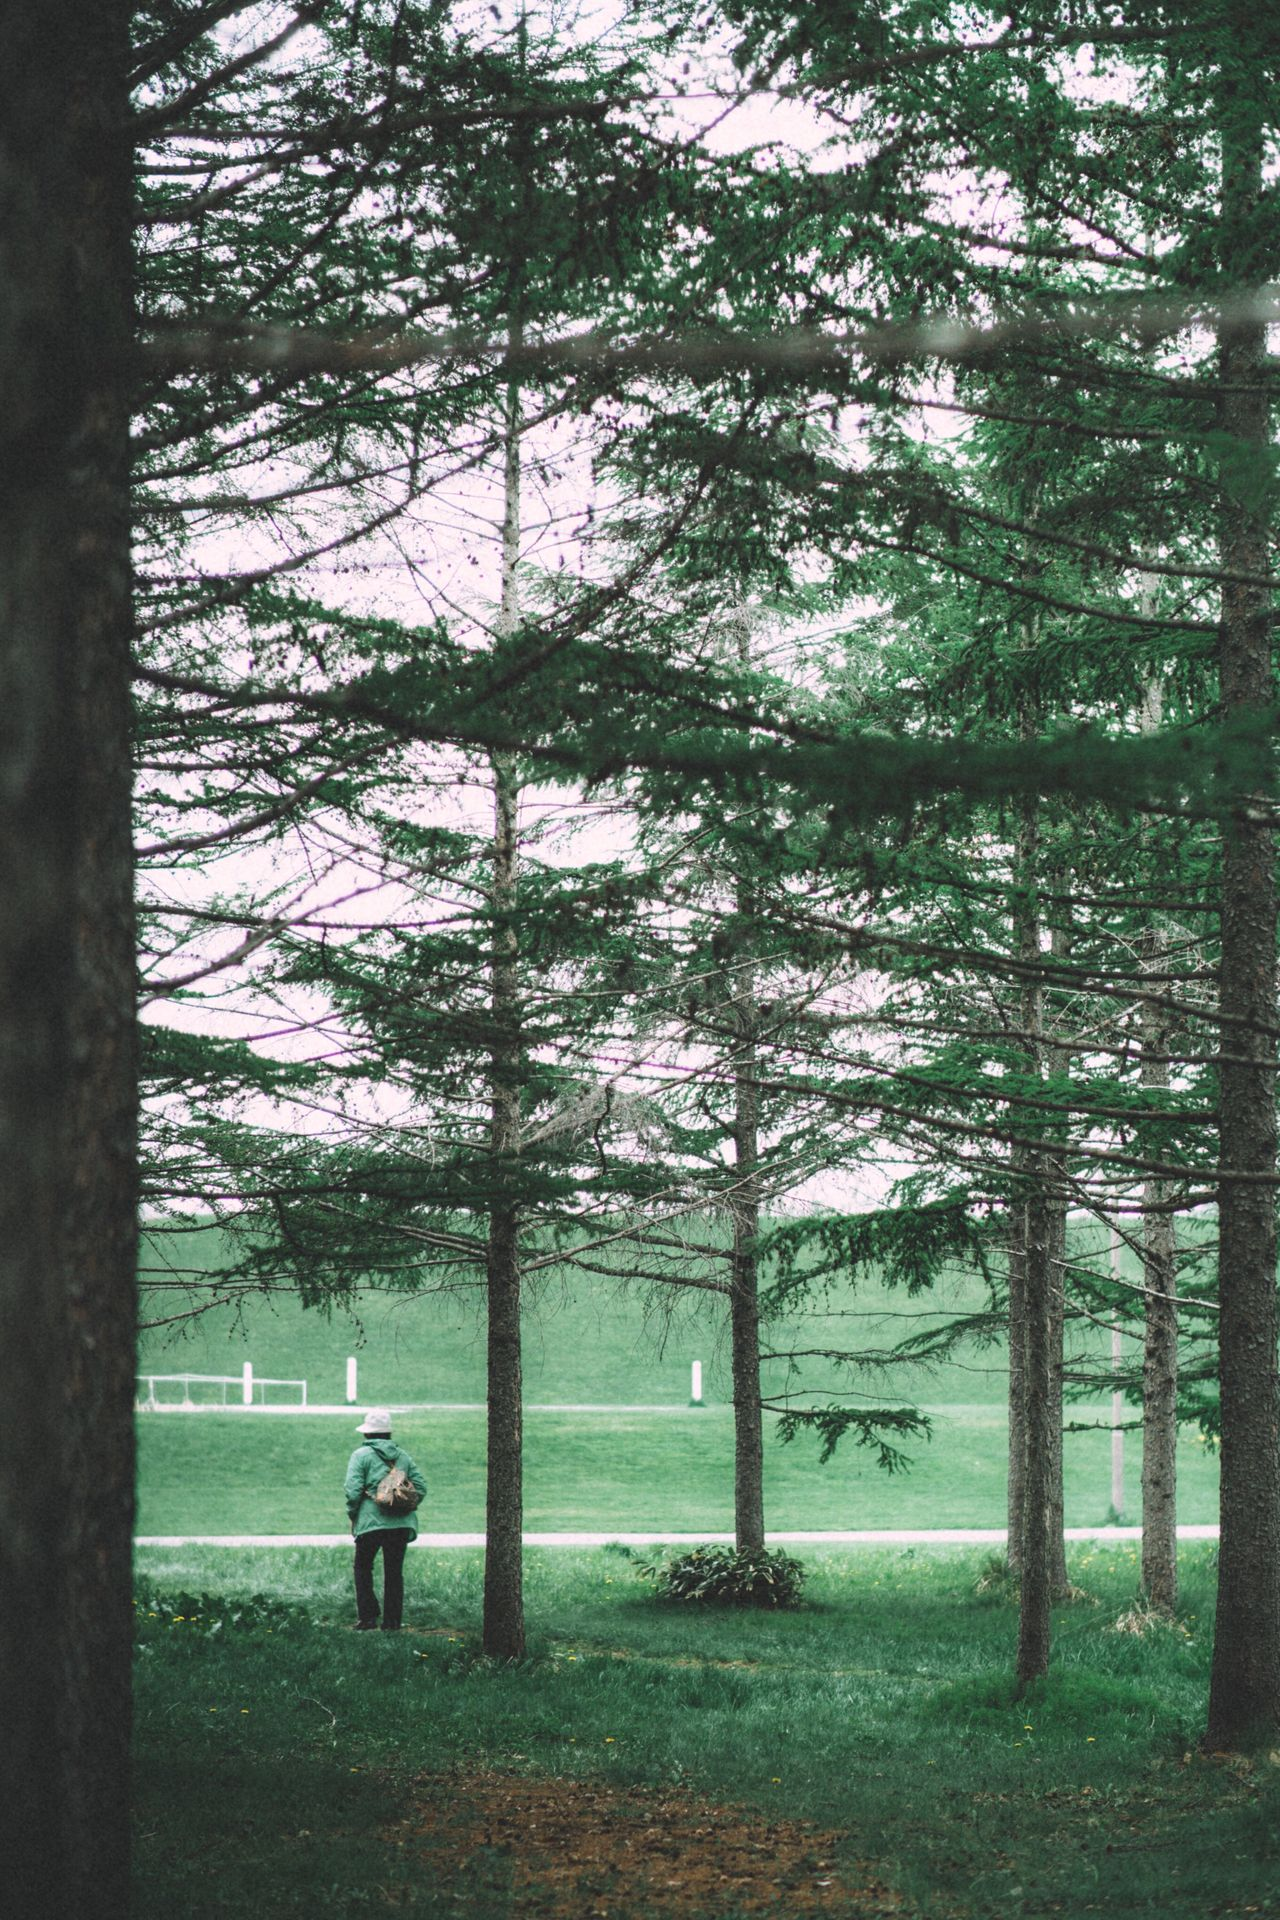 REAR VIEW OF WOMAN IN PARK WITH TREES IN BACKGROUND